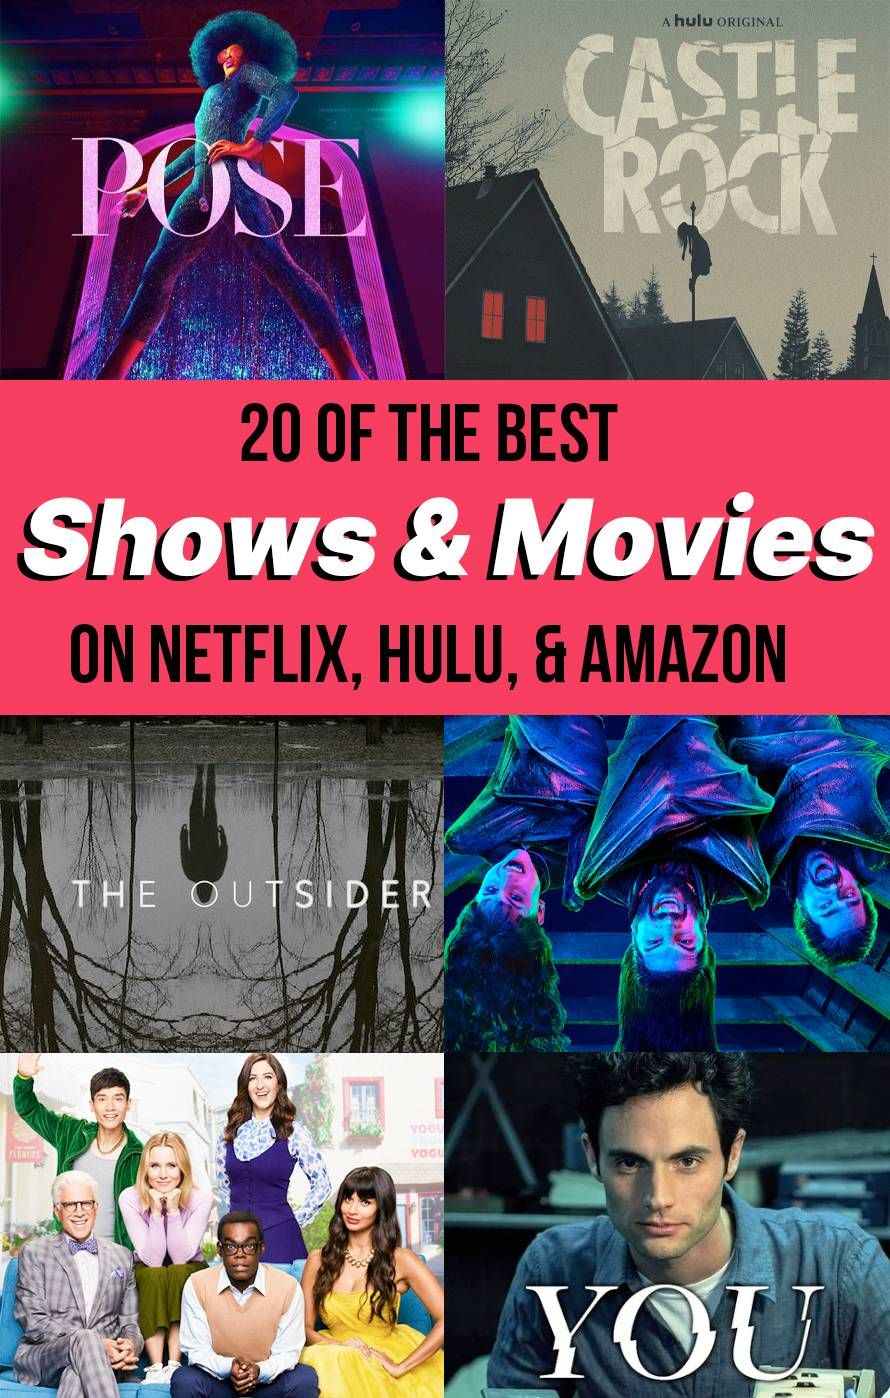 20 Best TV Shows (And Movies!) To Watch On Netflix, Hulu, Amazon Prime &  HBO During Winter 2020 in 2020 | Hulu tv shows, Best tv shows, Movies to  watch